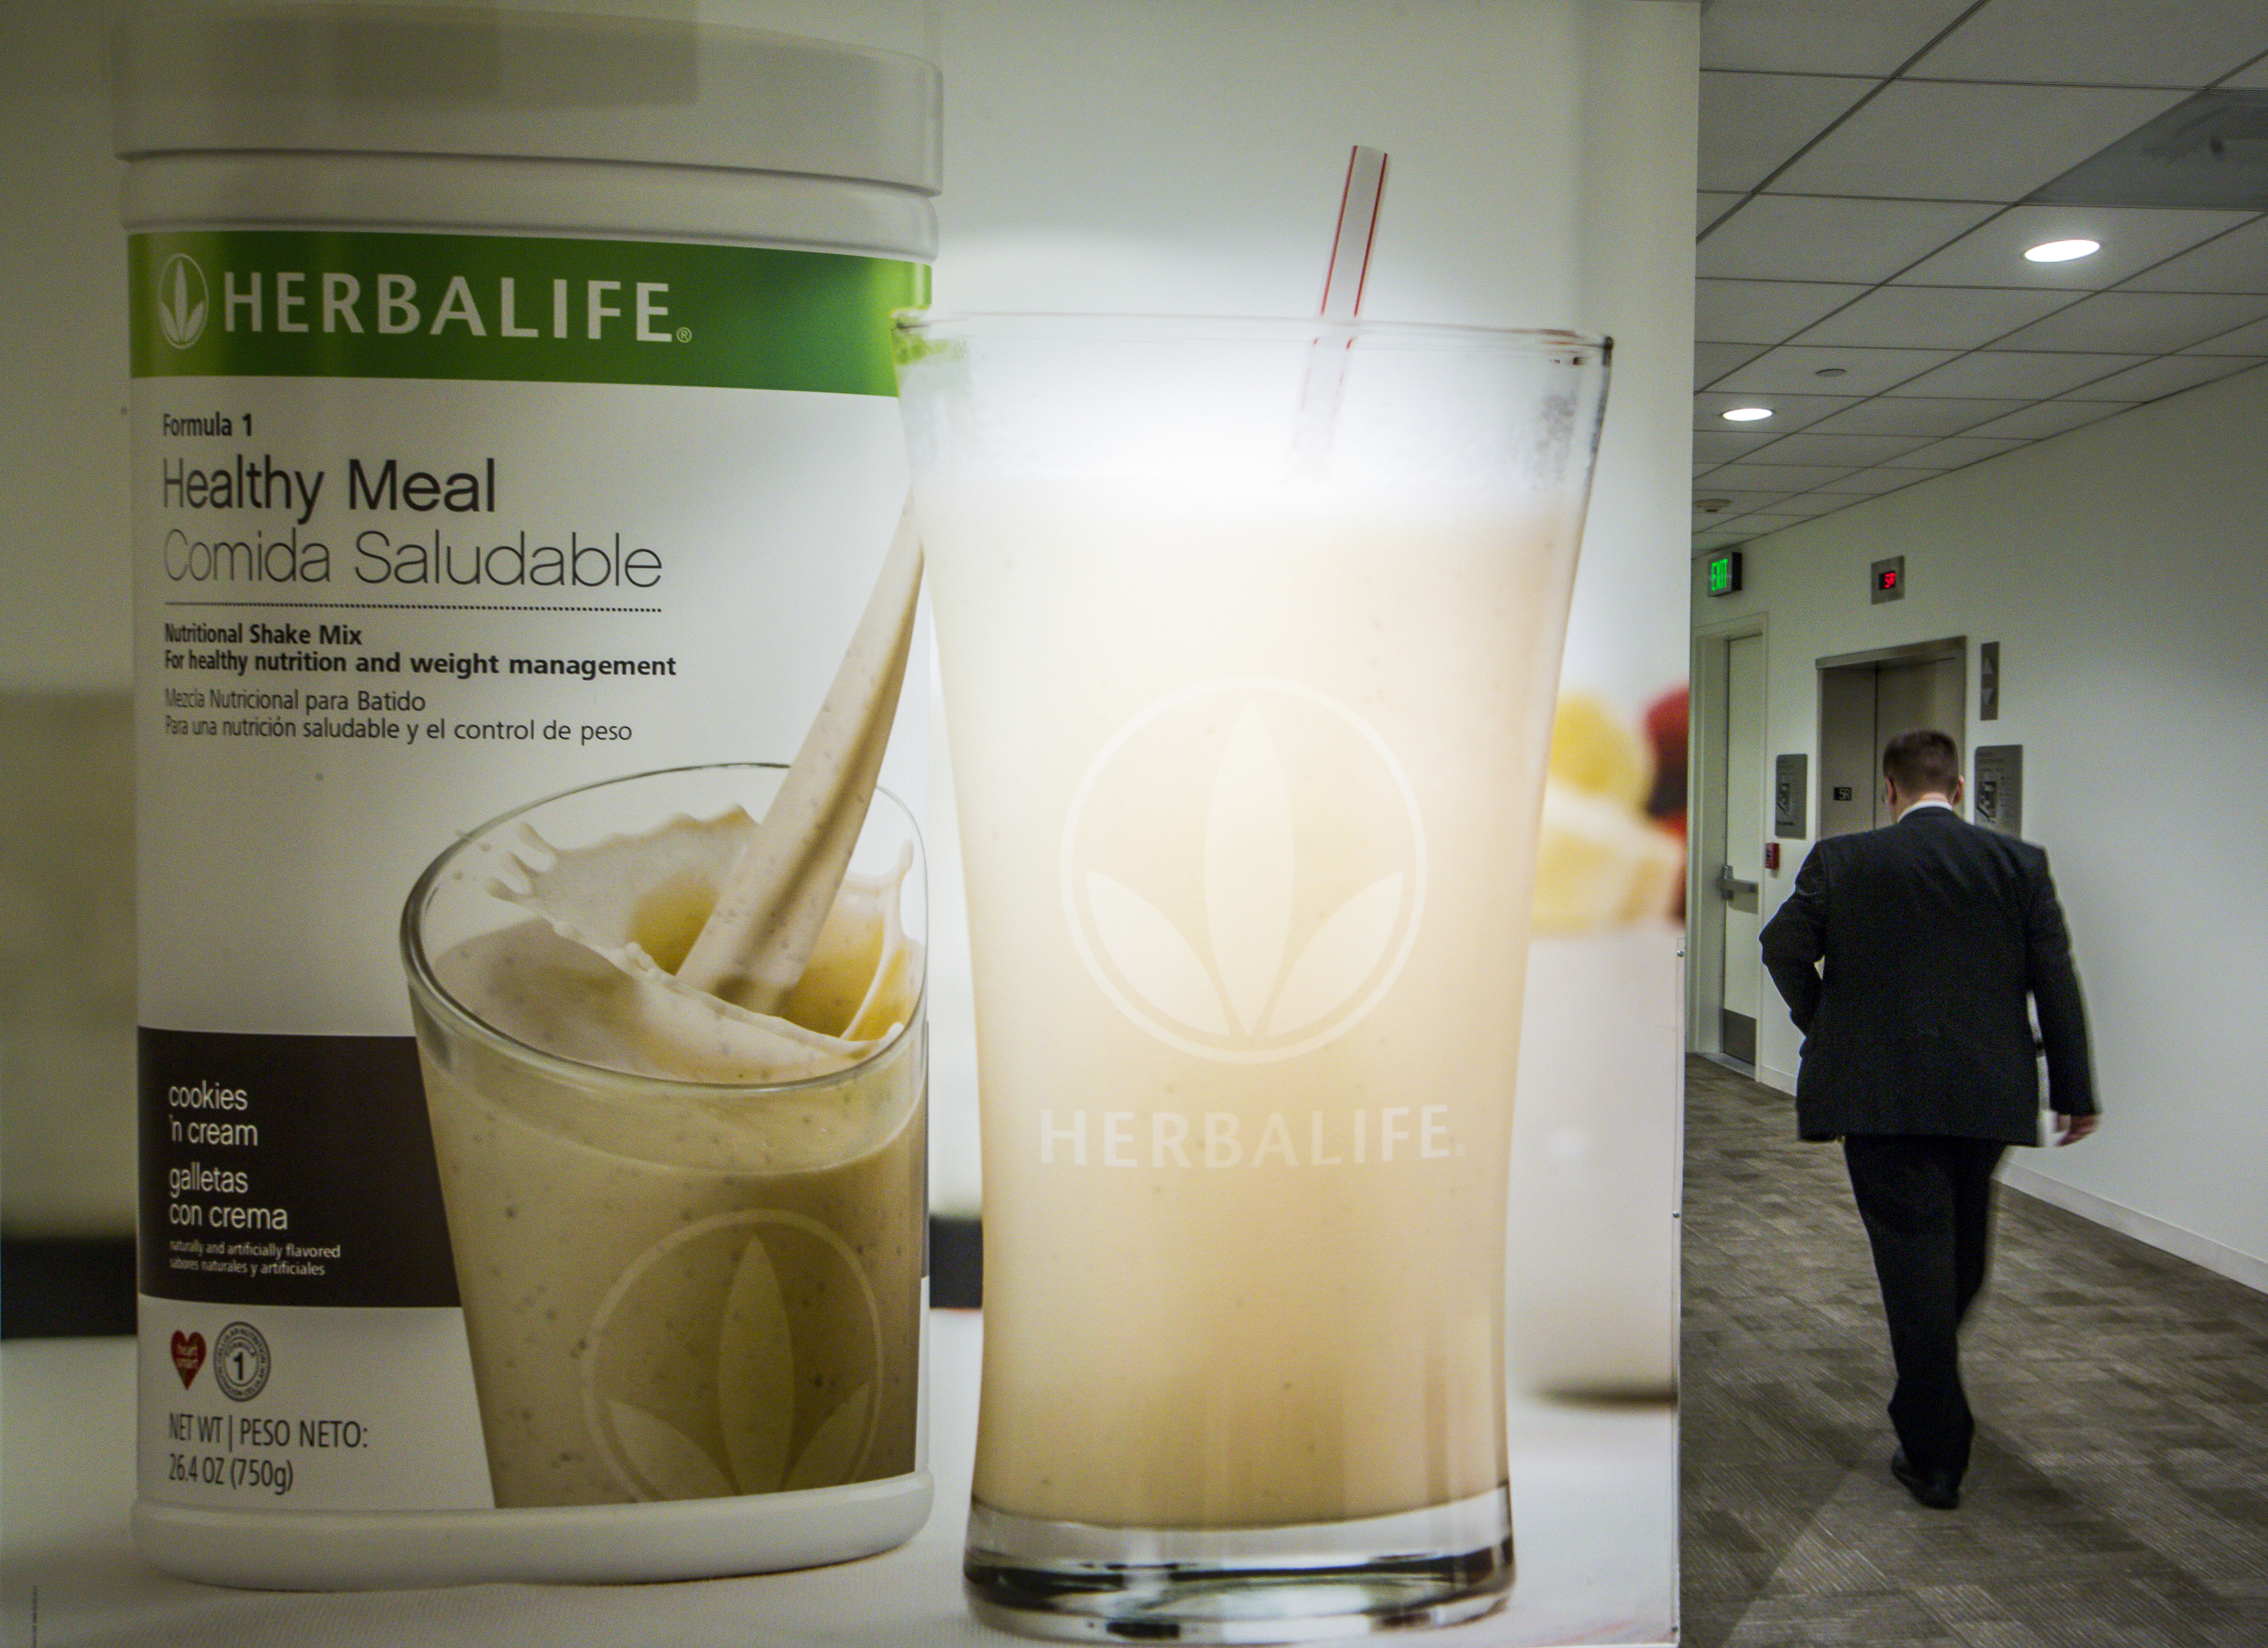 Earns Herbalife